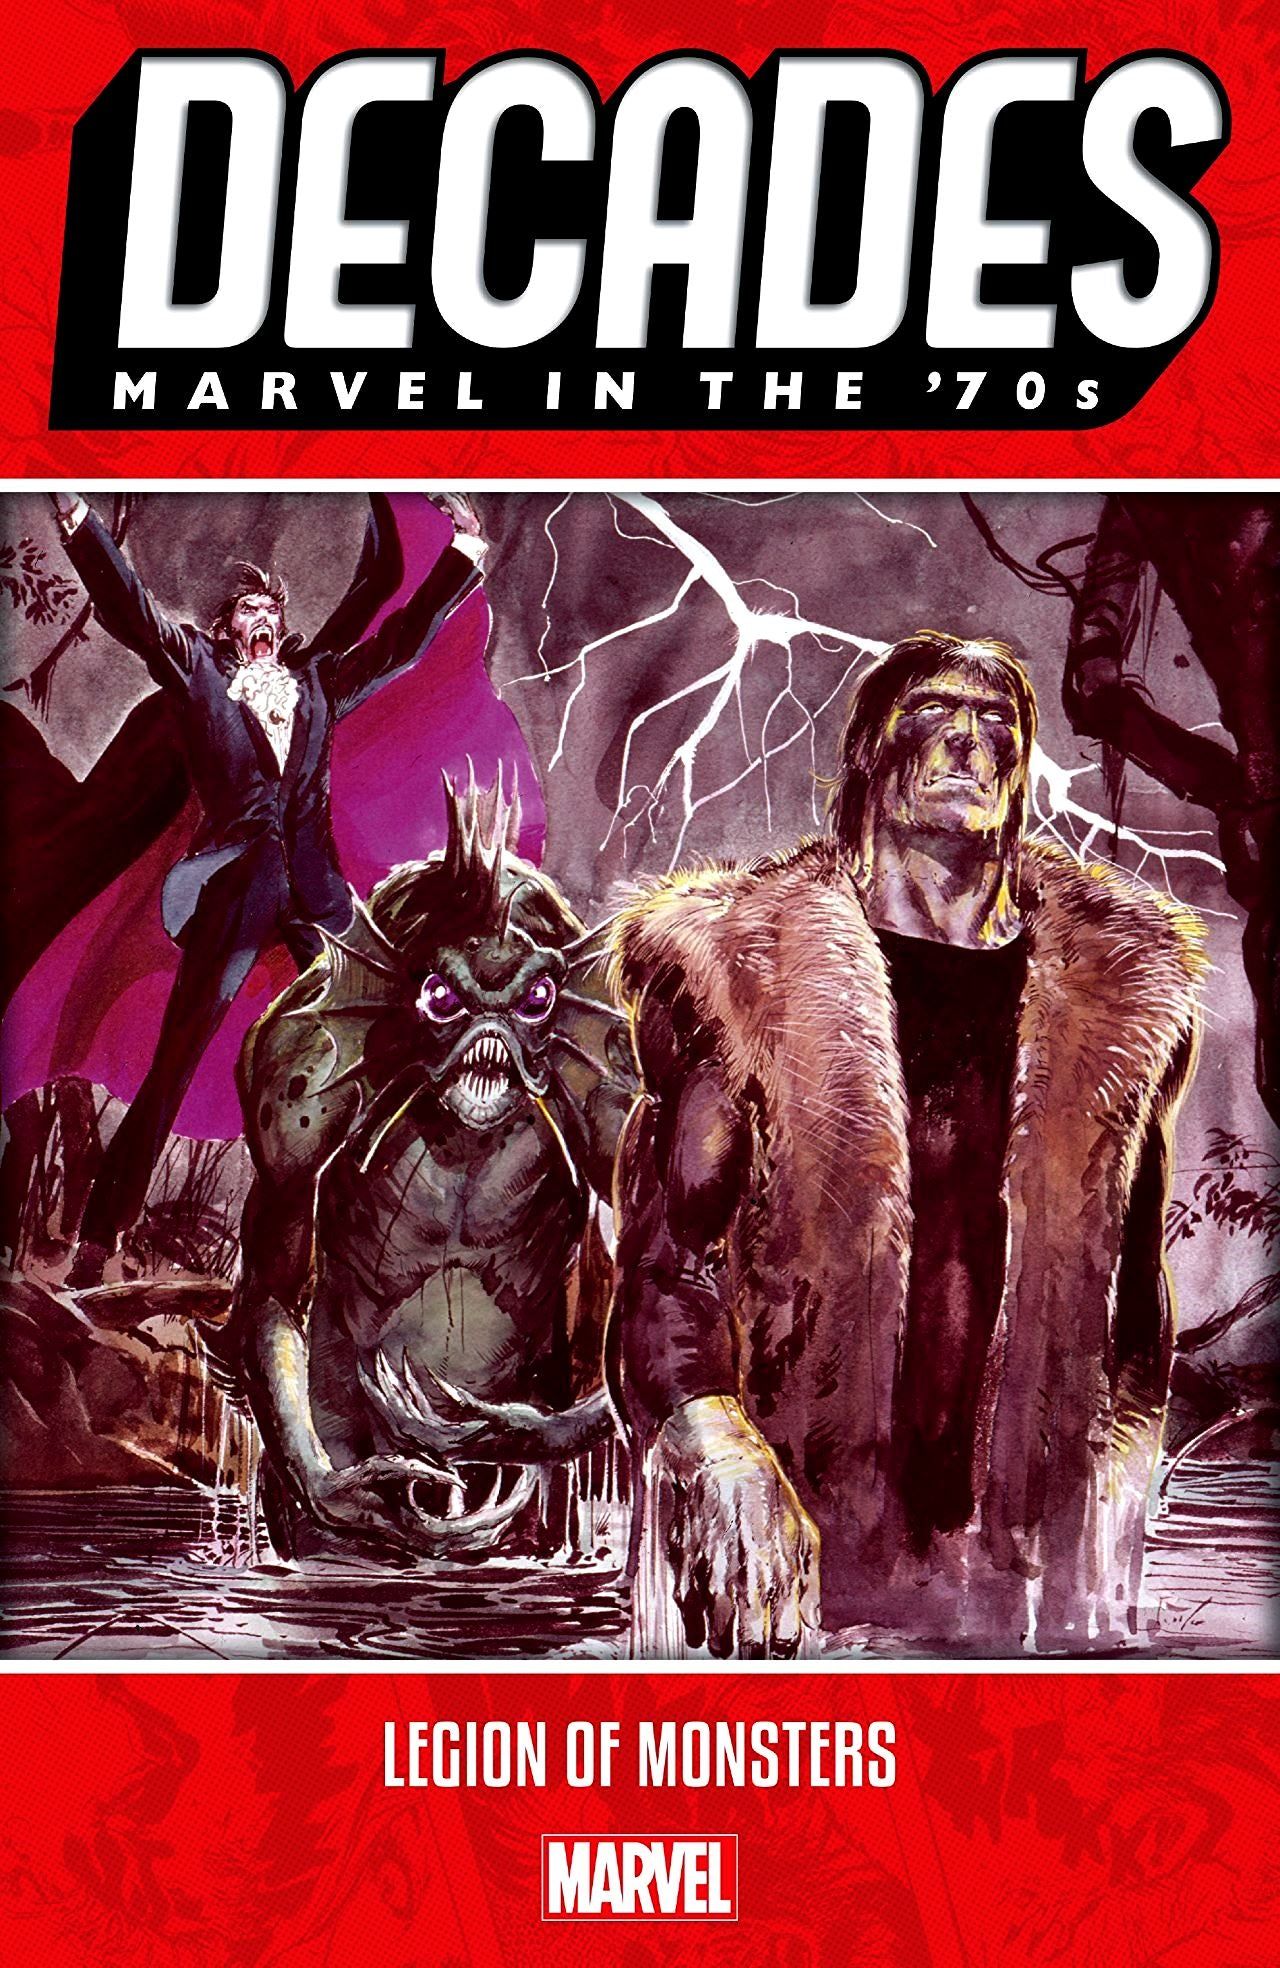 Decades: Marvel in the '70s - Legion of Monsters